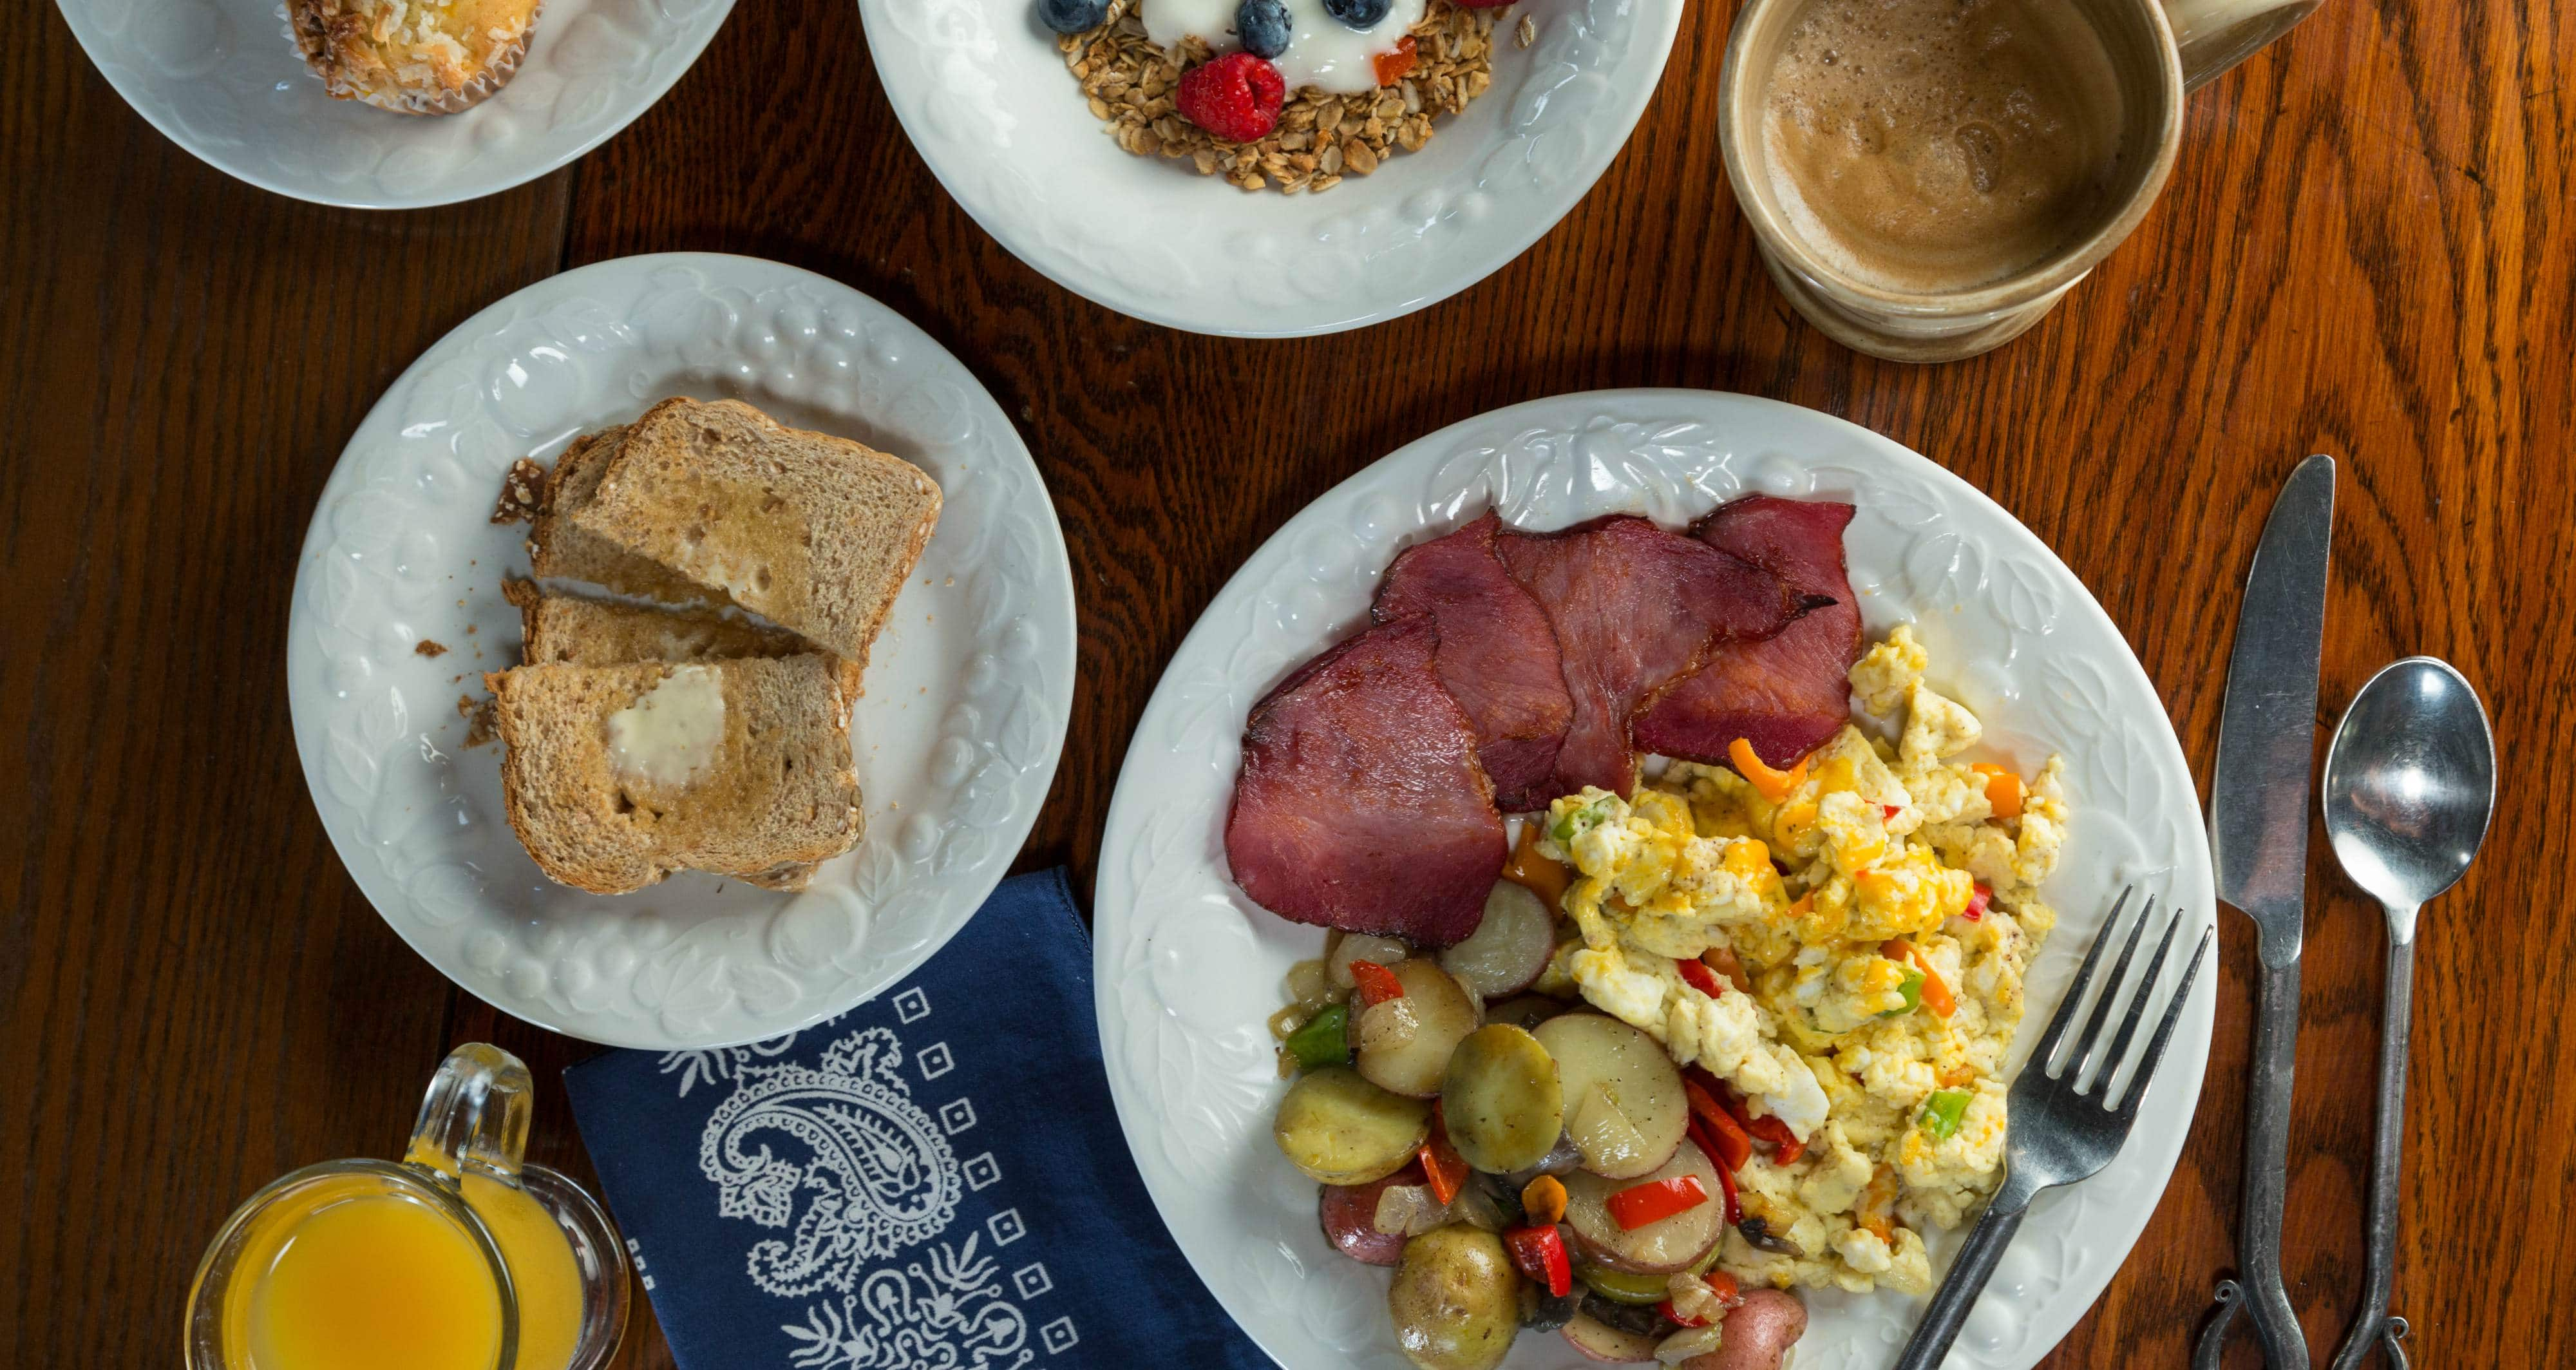 Wisconsin Bed and Breakfast Eggs, thick-cut bacon from the butcher, handmade granola, vegetables fresh fruit and egg dish